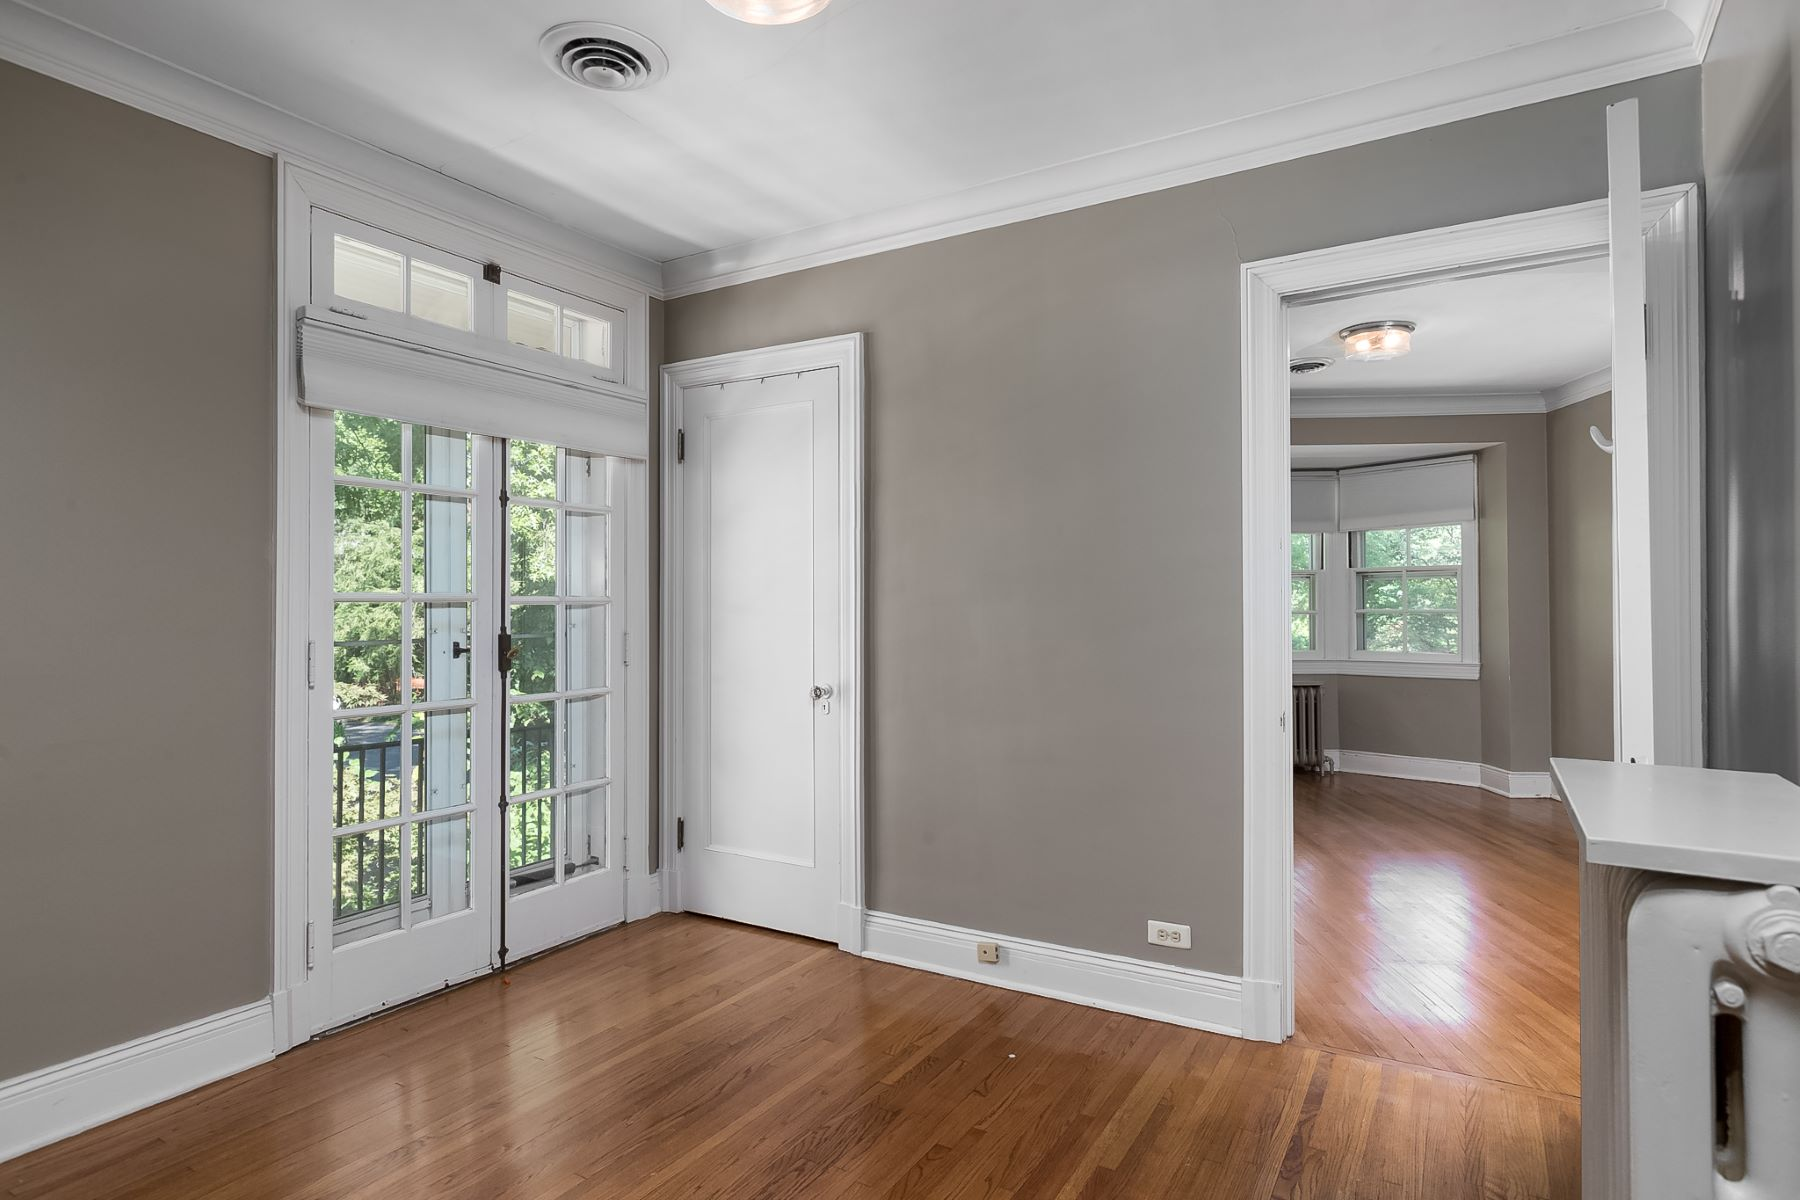 Additional photo for property listing at Italian Renaissance Masterpiece in the University Hills Neighborhood 7201 Greenway Avenue University City, Missouri 63130 United States